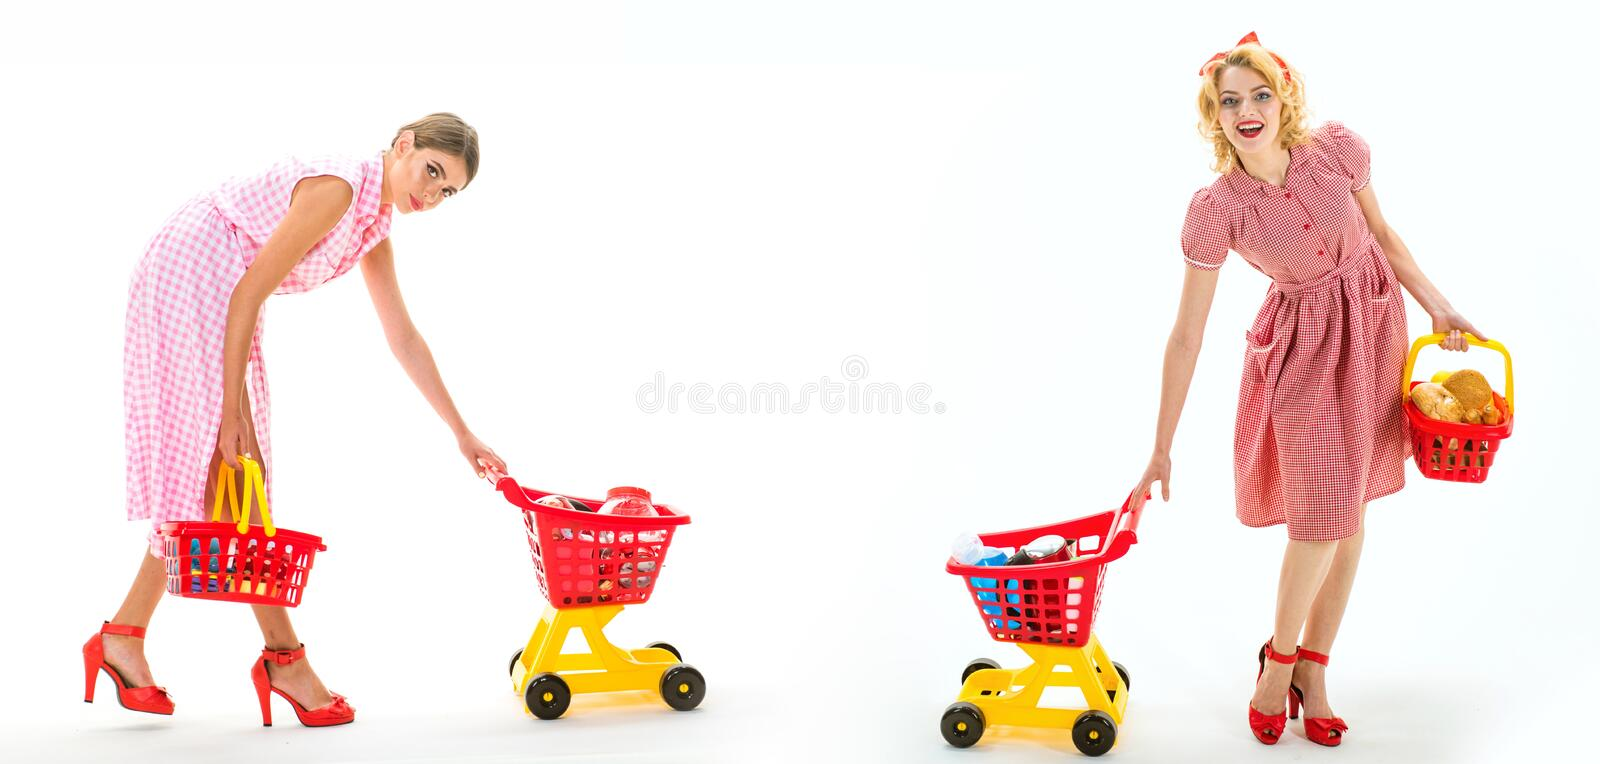 Retro women go shopping with full cart. savings on purchases. online shopping app. happy shopping girls with full cart. Vintage housewife women going to make royalty free stock photos